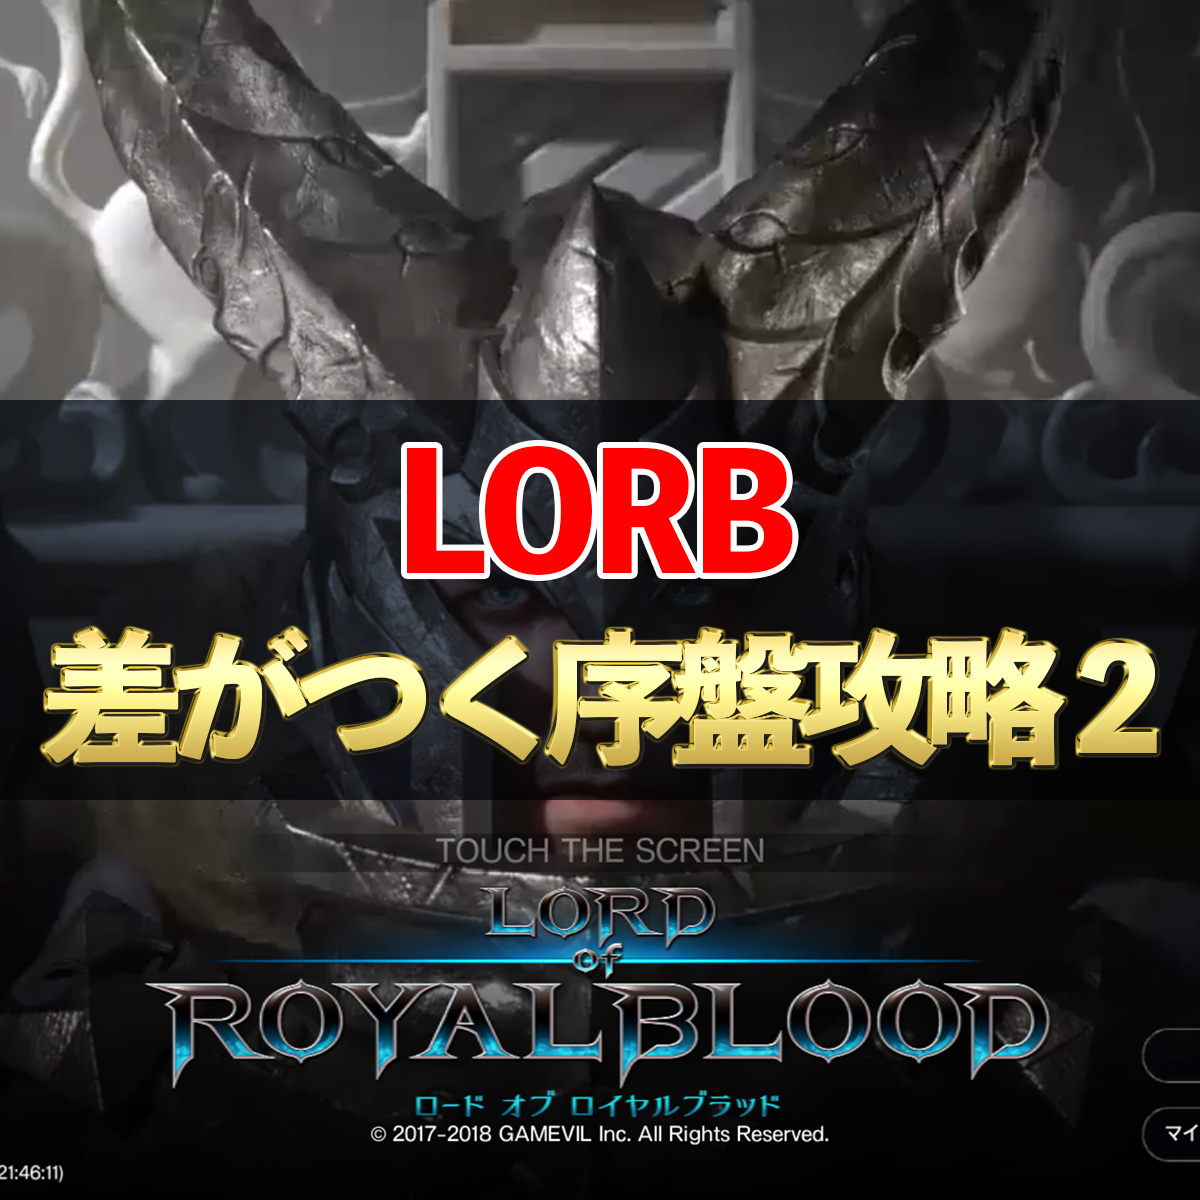 LORB 差がつく序盤攻略 その2